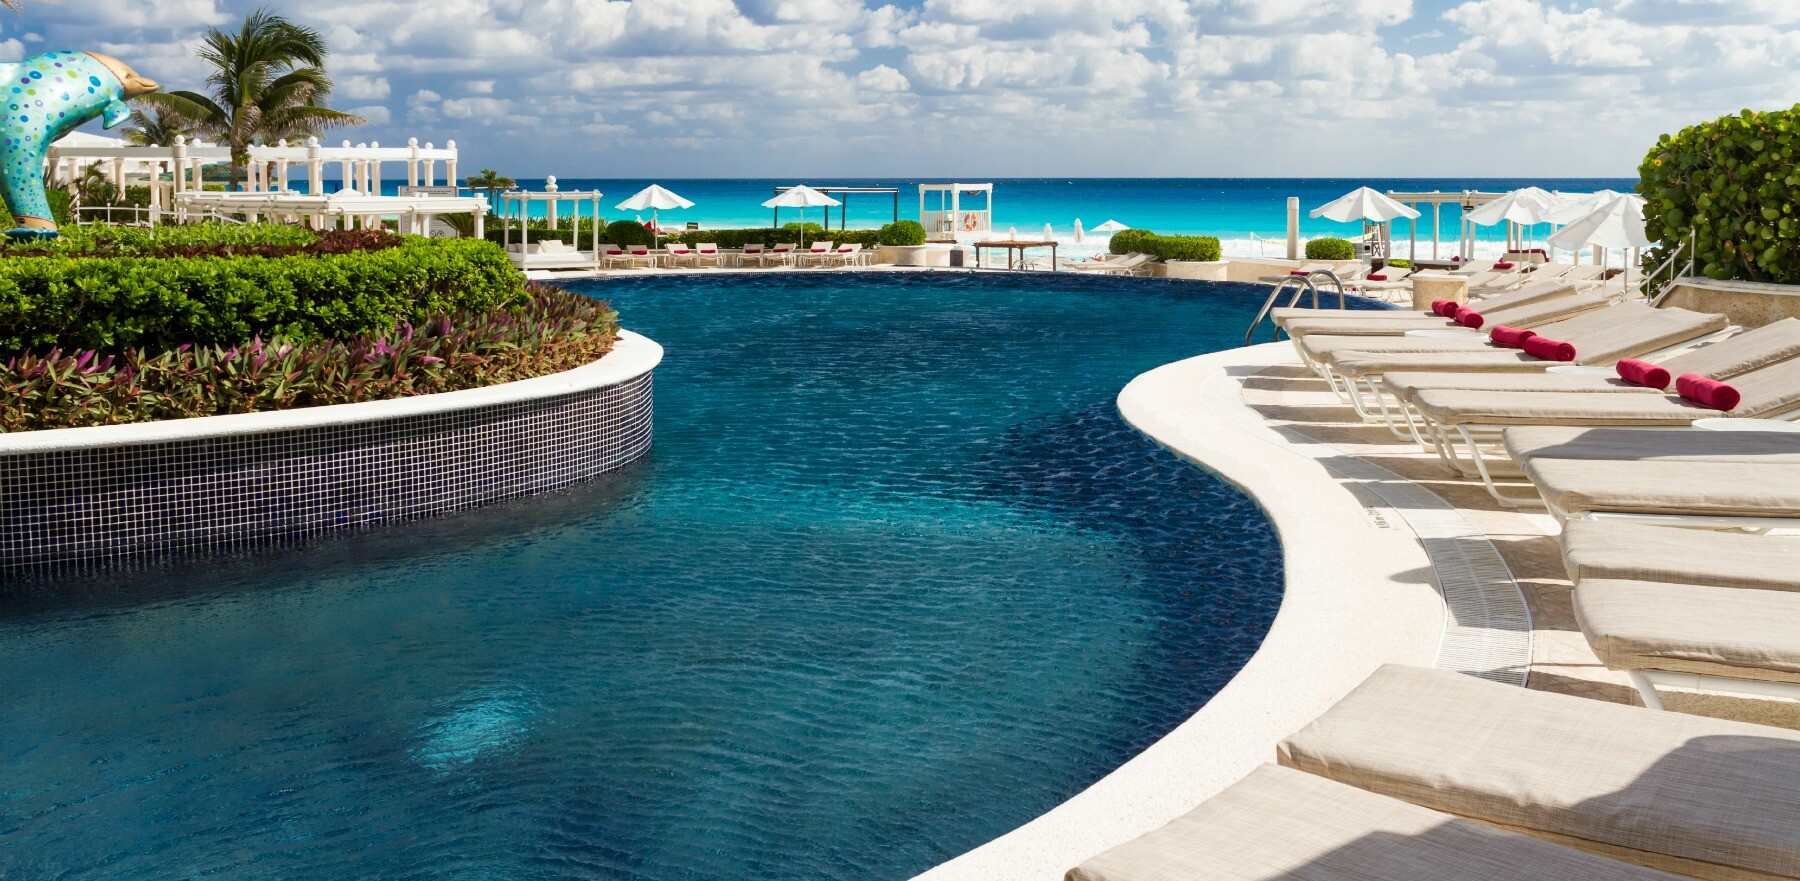 Nausicaa A Cancun Therapy For The Senses